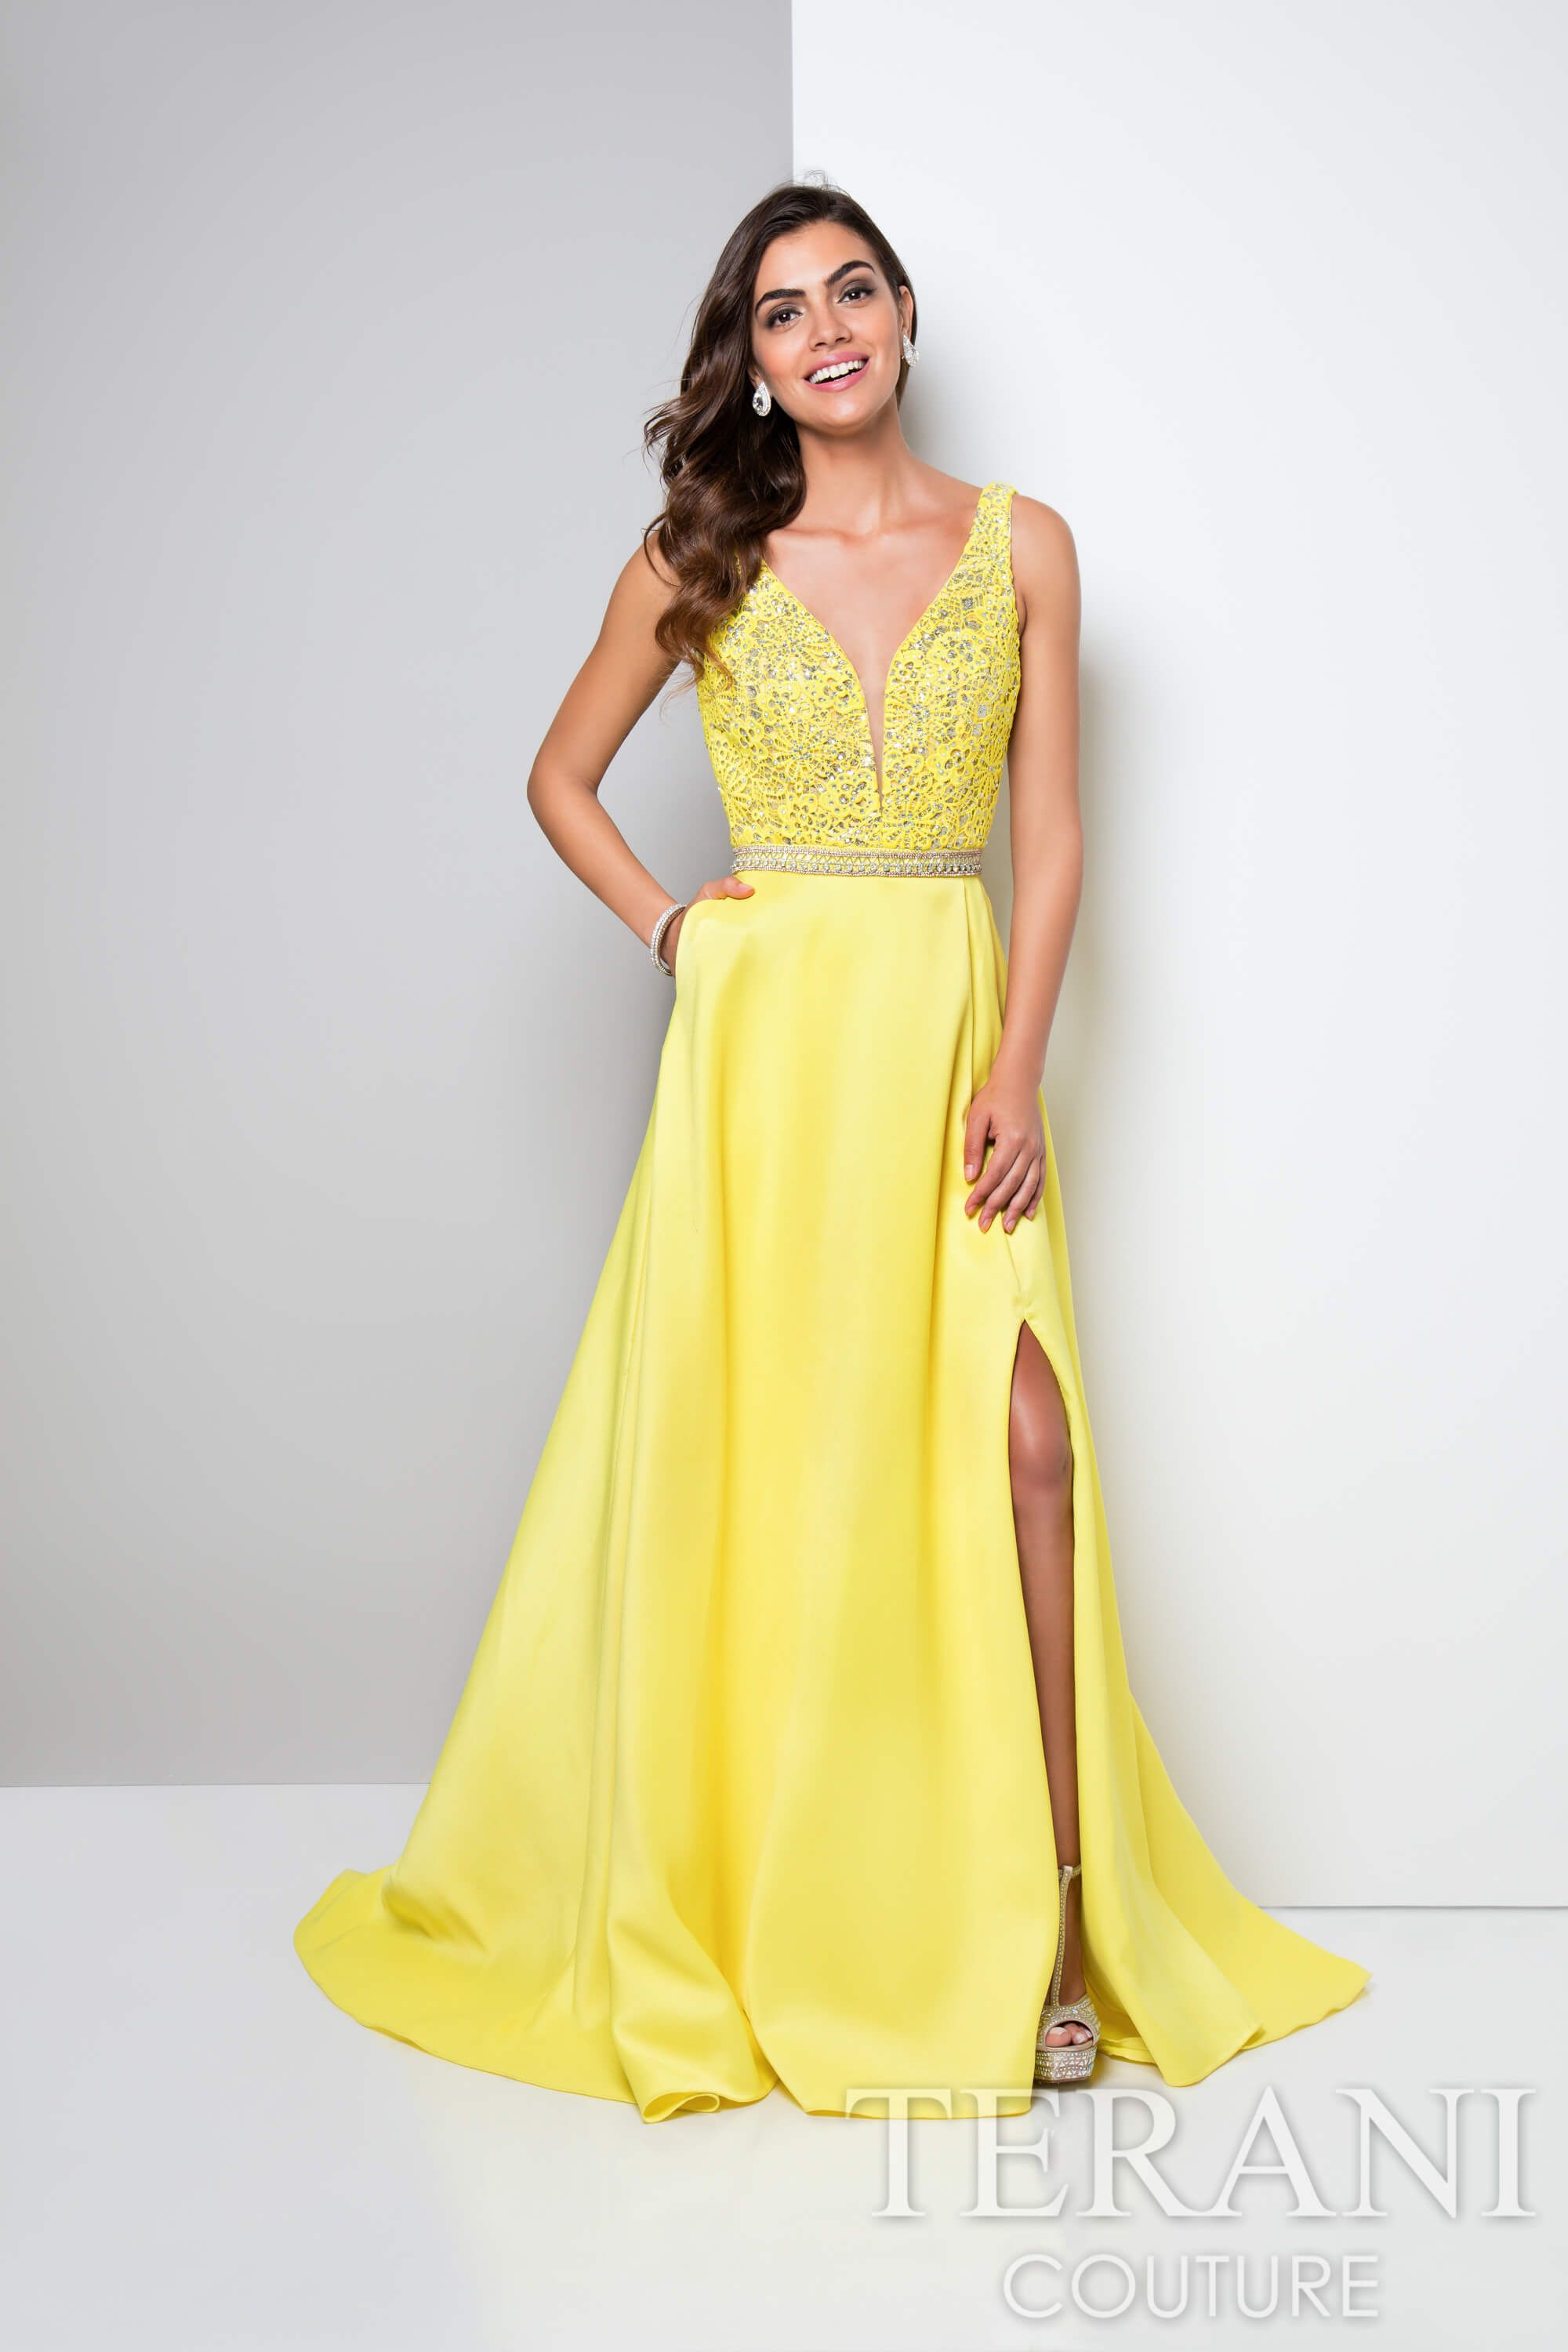 Yellow designer prom gown featuring a jeweled floral lace bodice